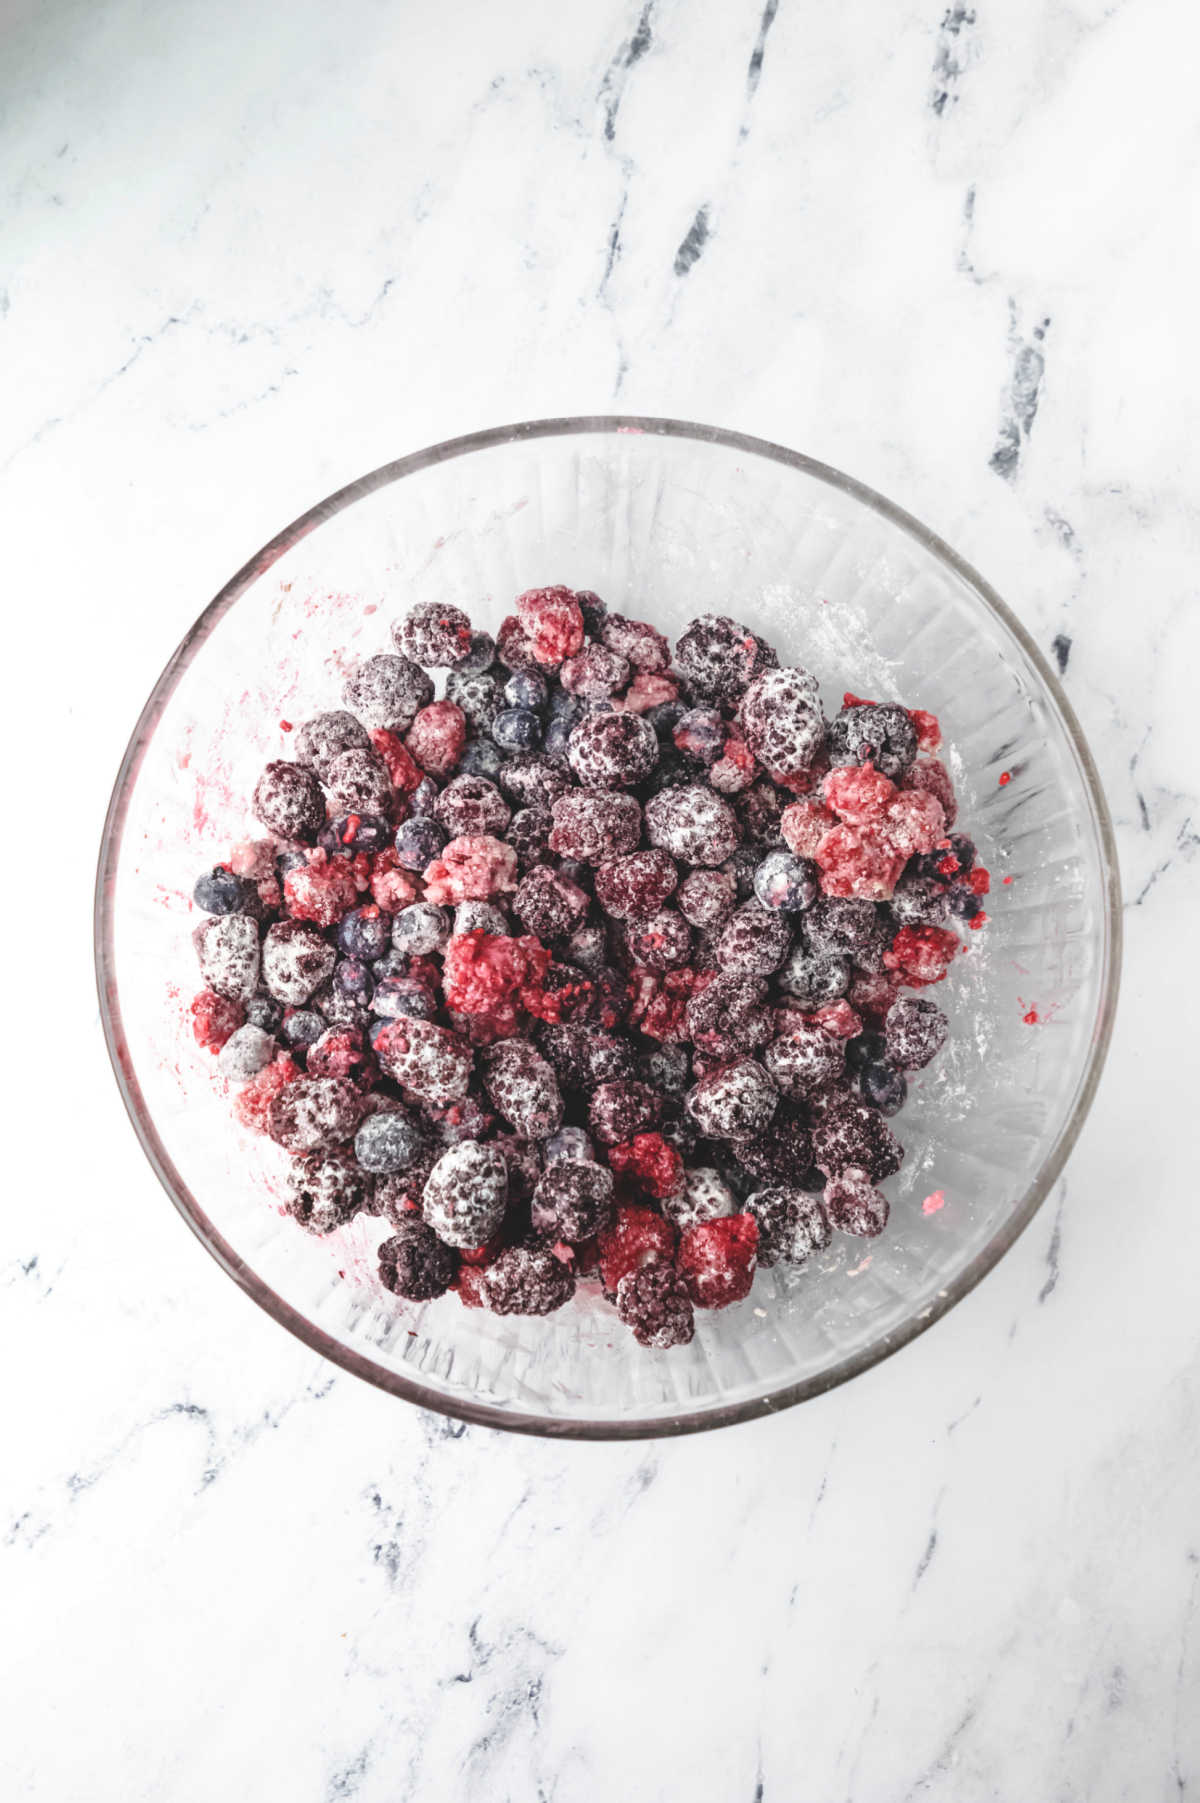 Raspberries blueberries and blackberries in a glass mixing bowl.